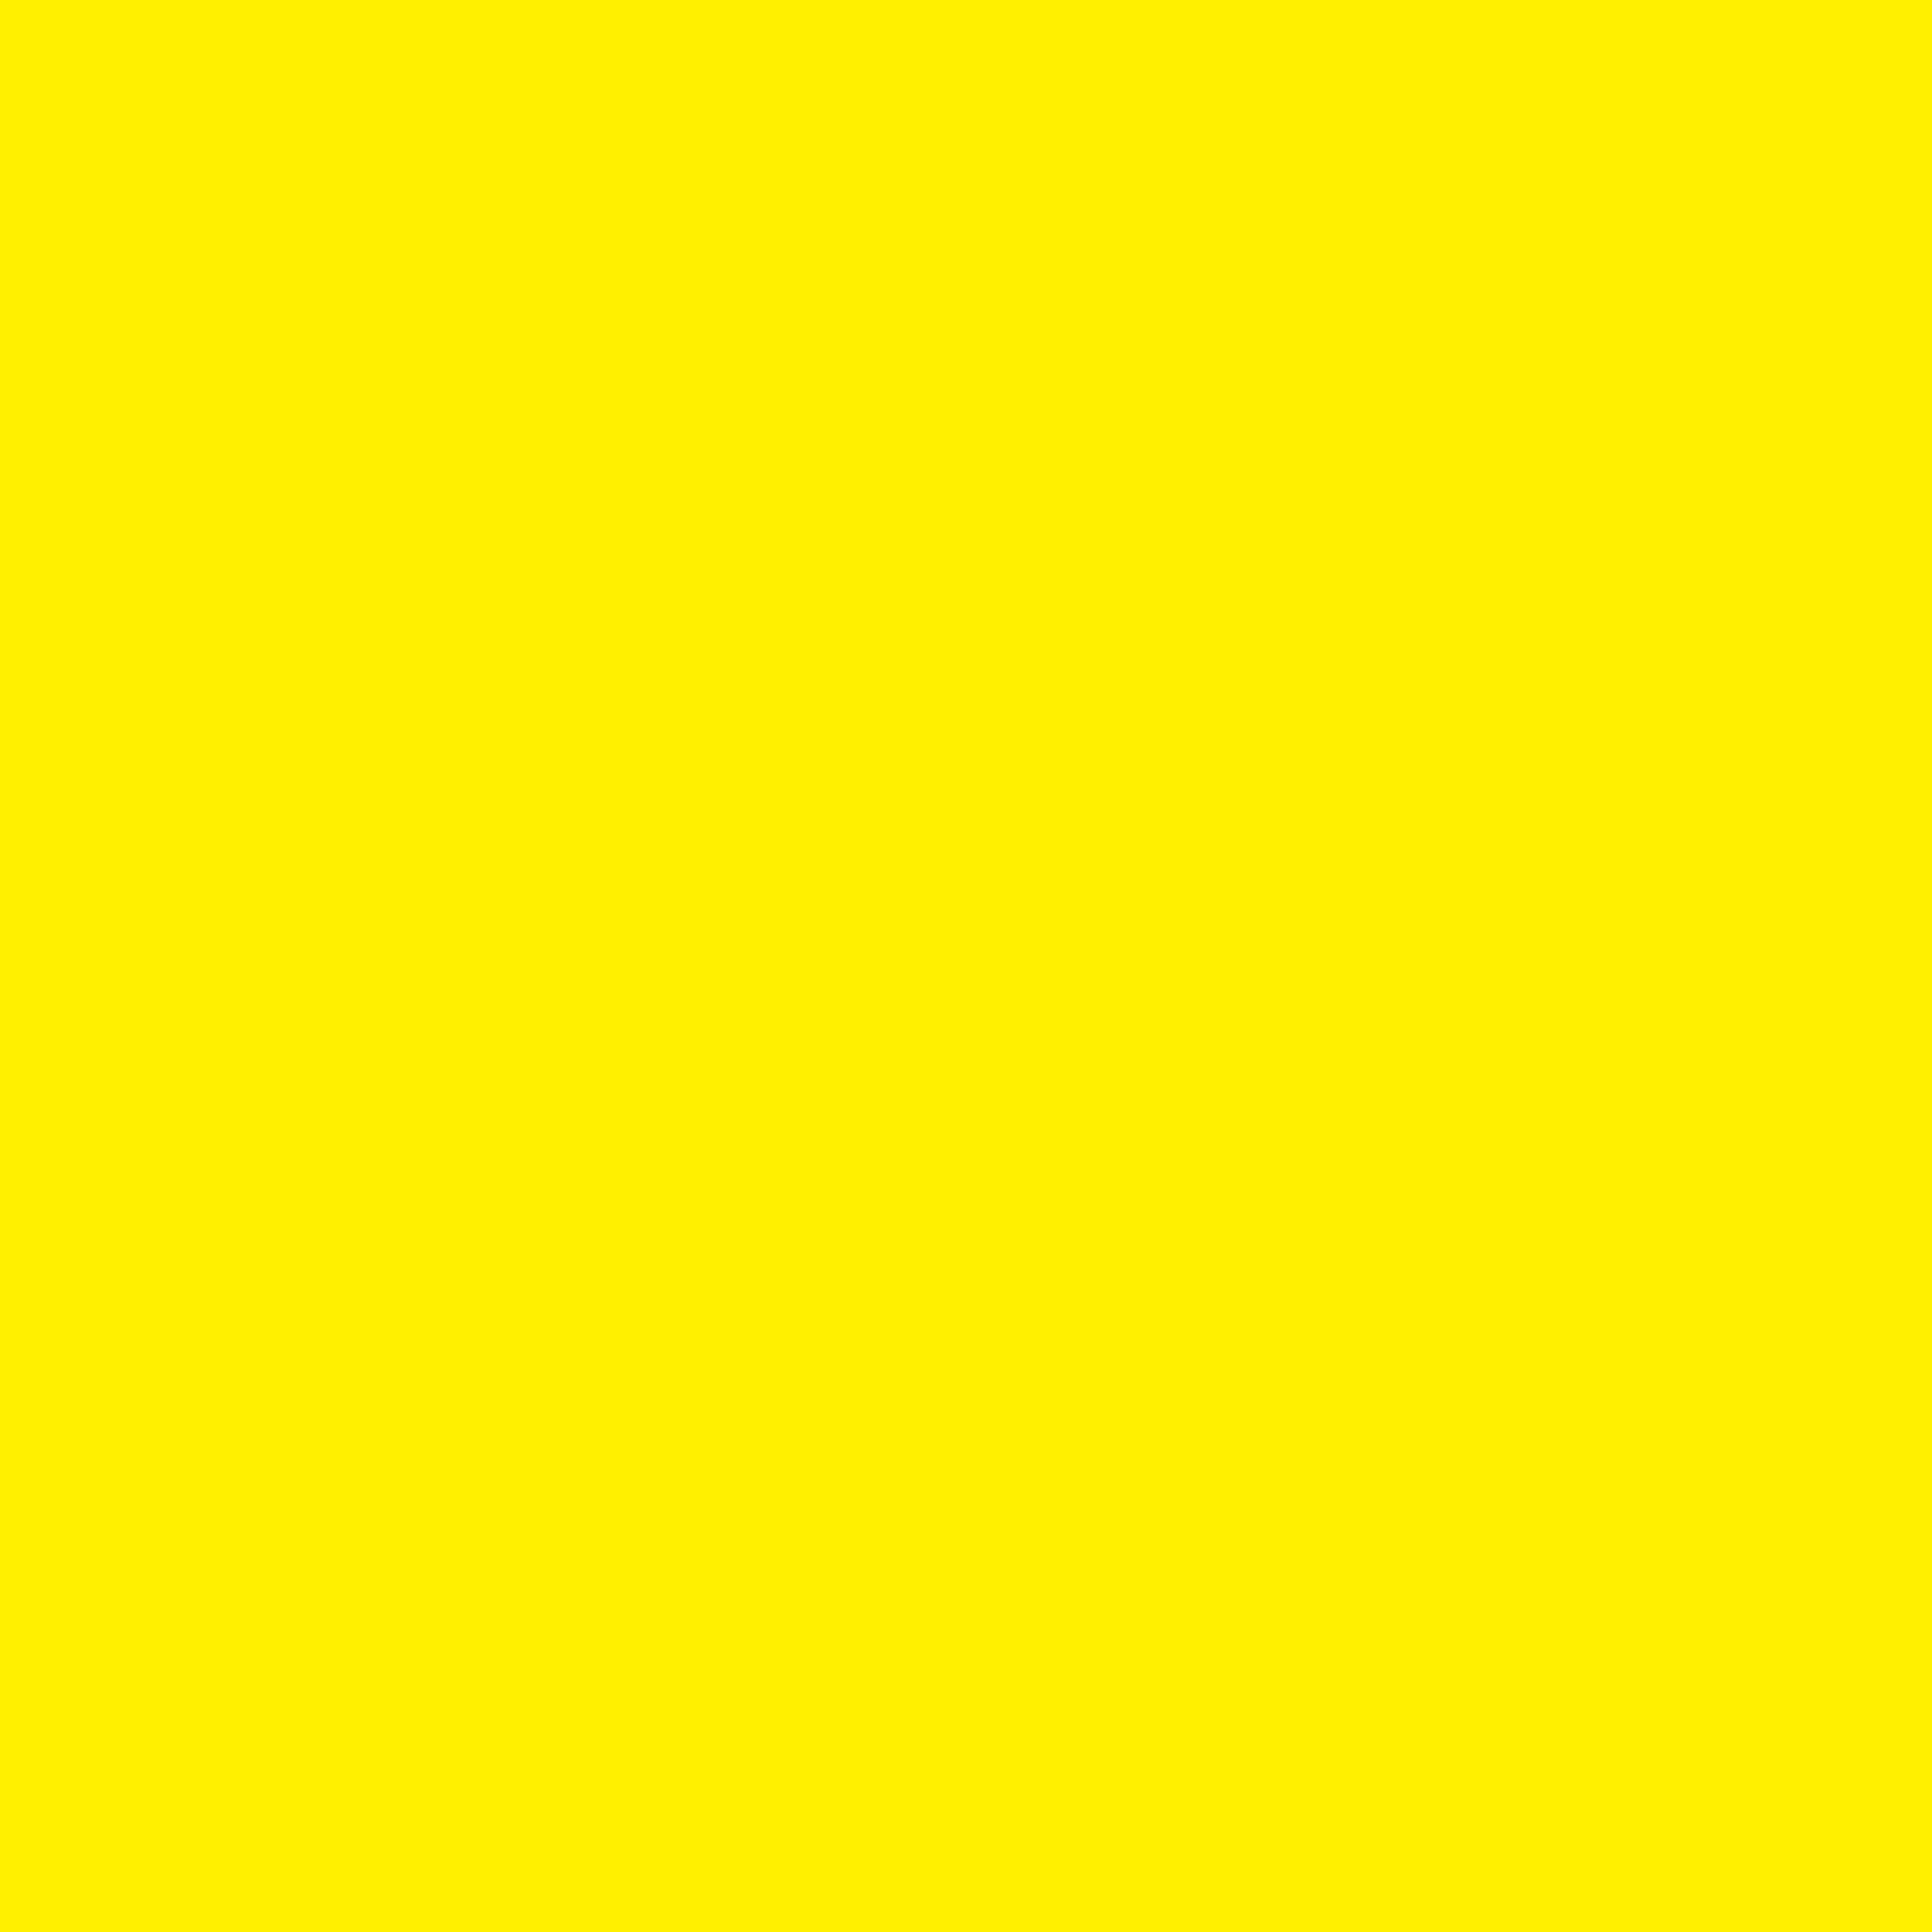 2732x2732 Yellow Rose Solid Color Background